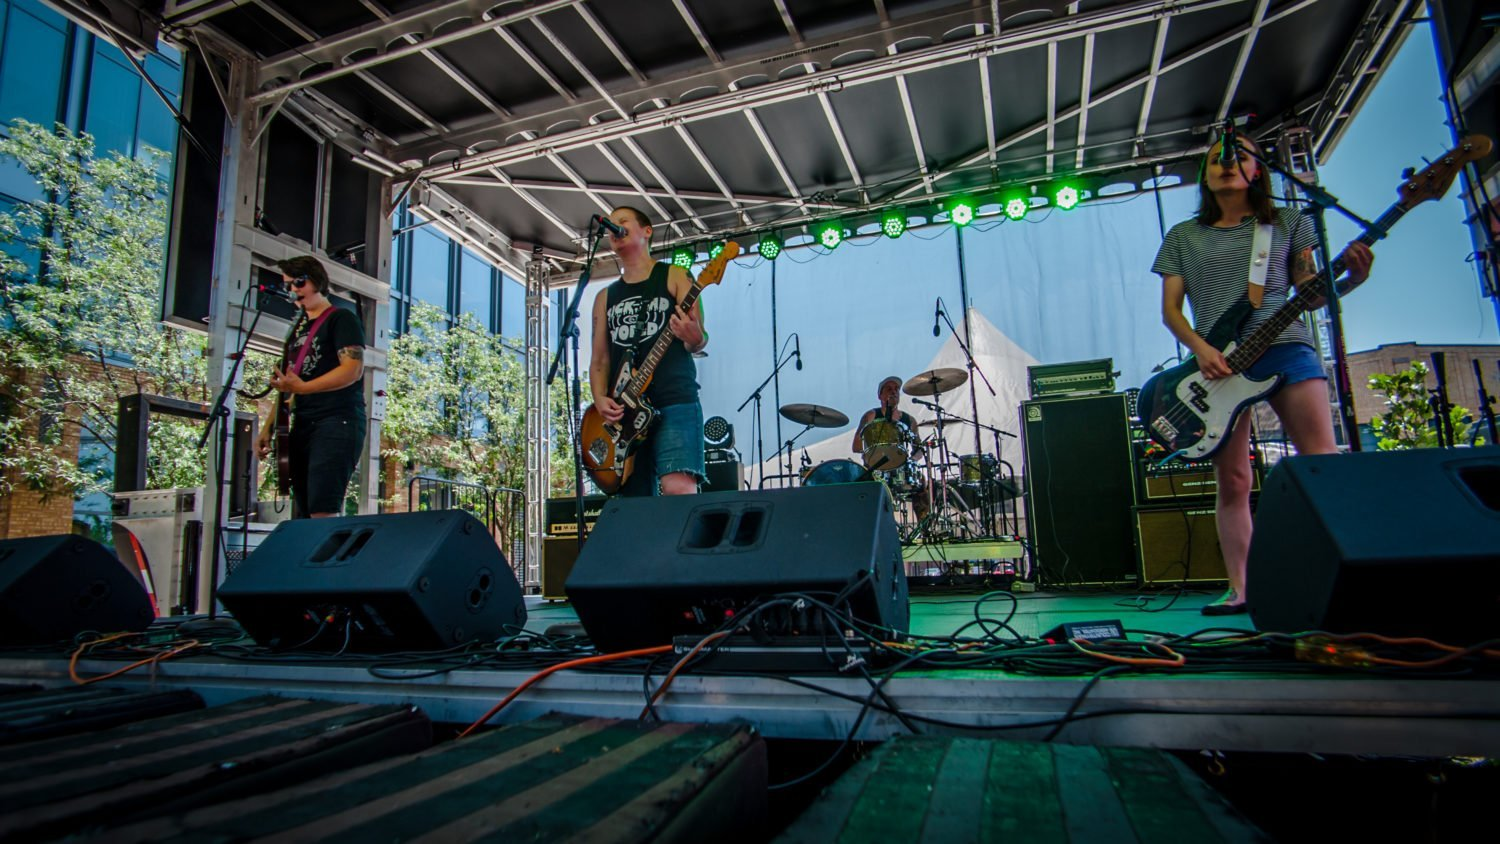 Starry Nights performing at 80/35 Music Festival 2018 in Des Moines, Iowa